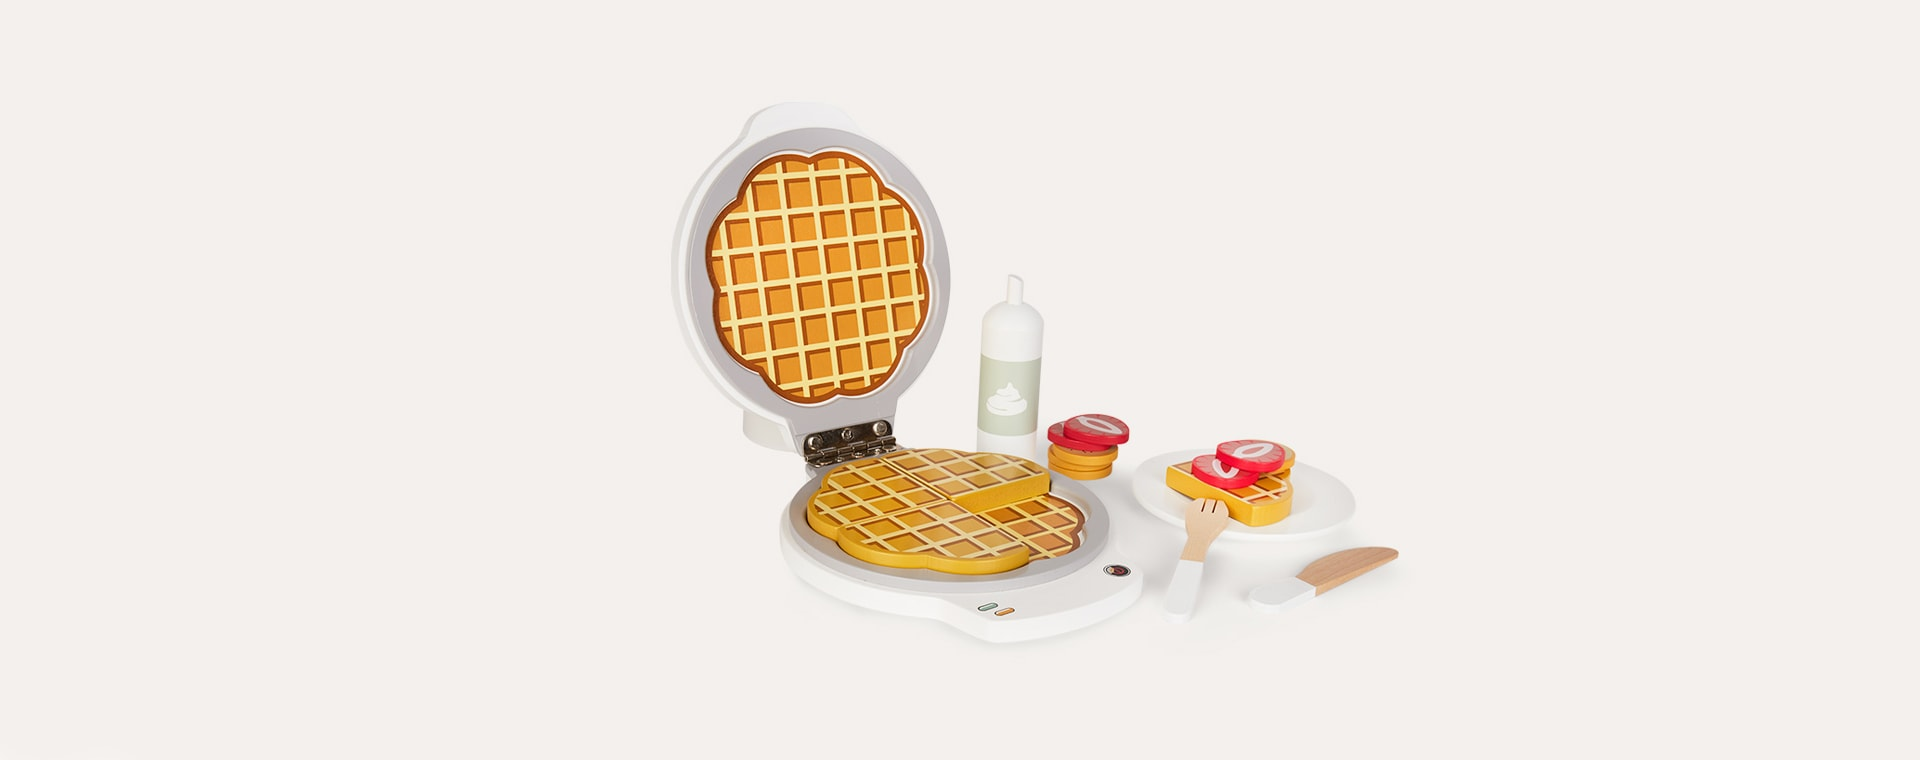 Buy The Kid S Concept Waffle Iron Bistro At Kidly Eu